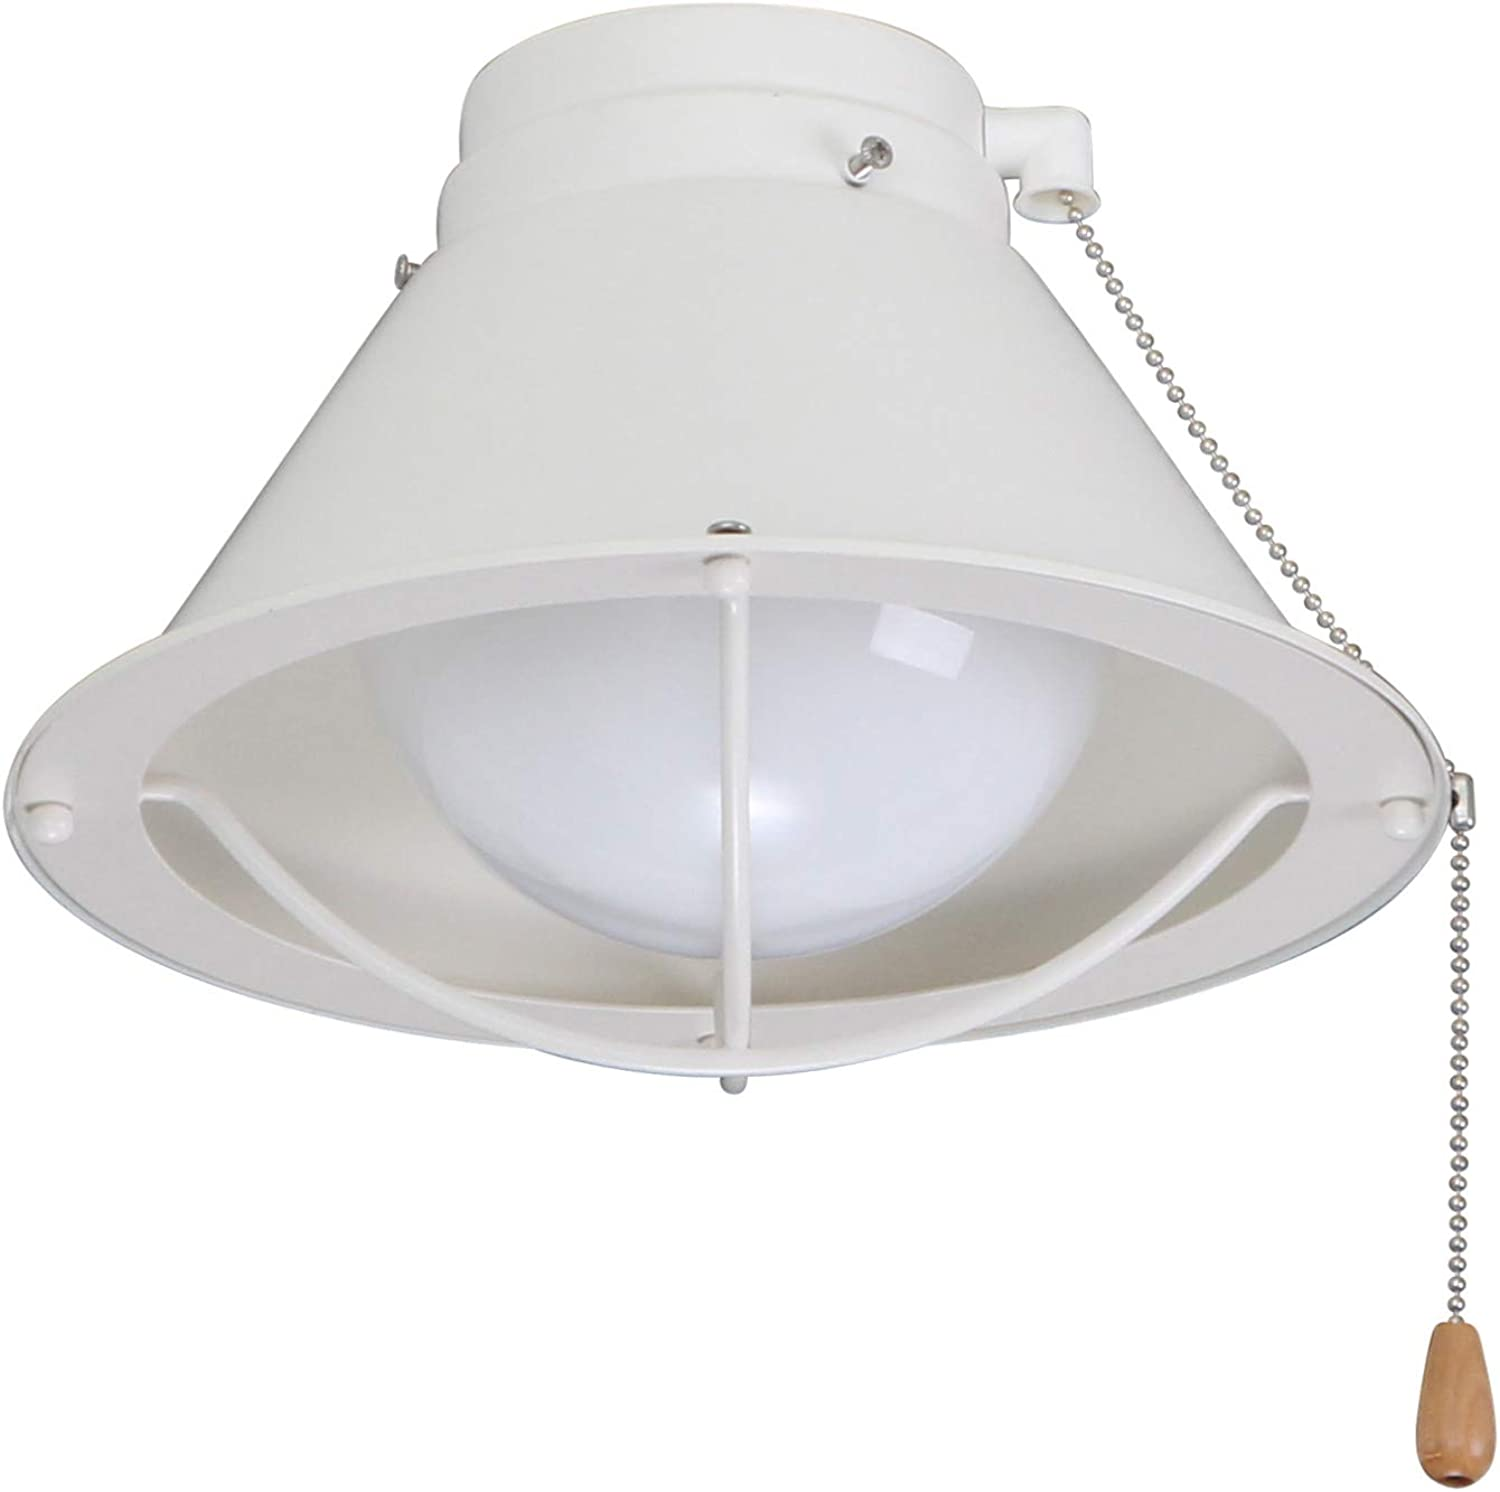 Emerson Ceiling Fans LK46AW Seaside Lamp for Ceiling Fans